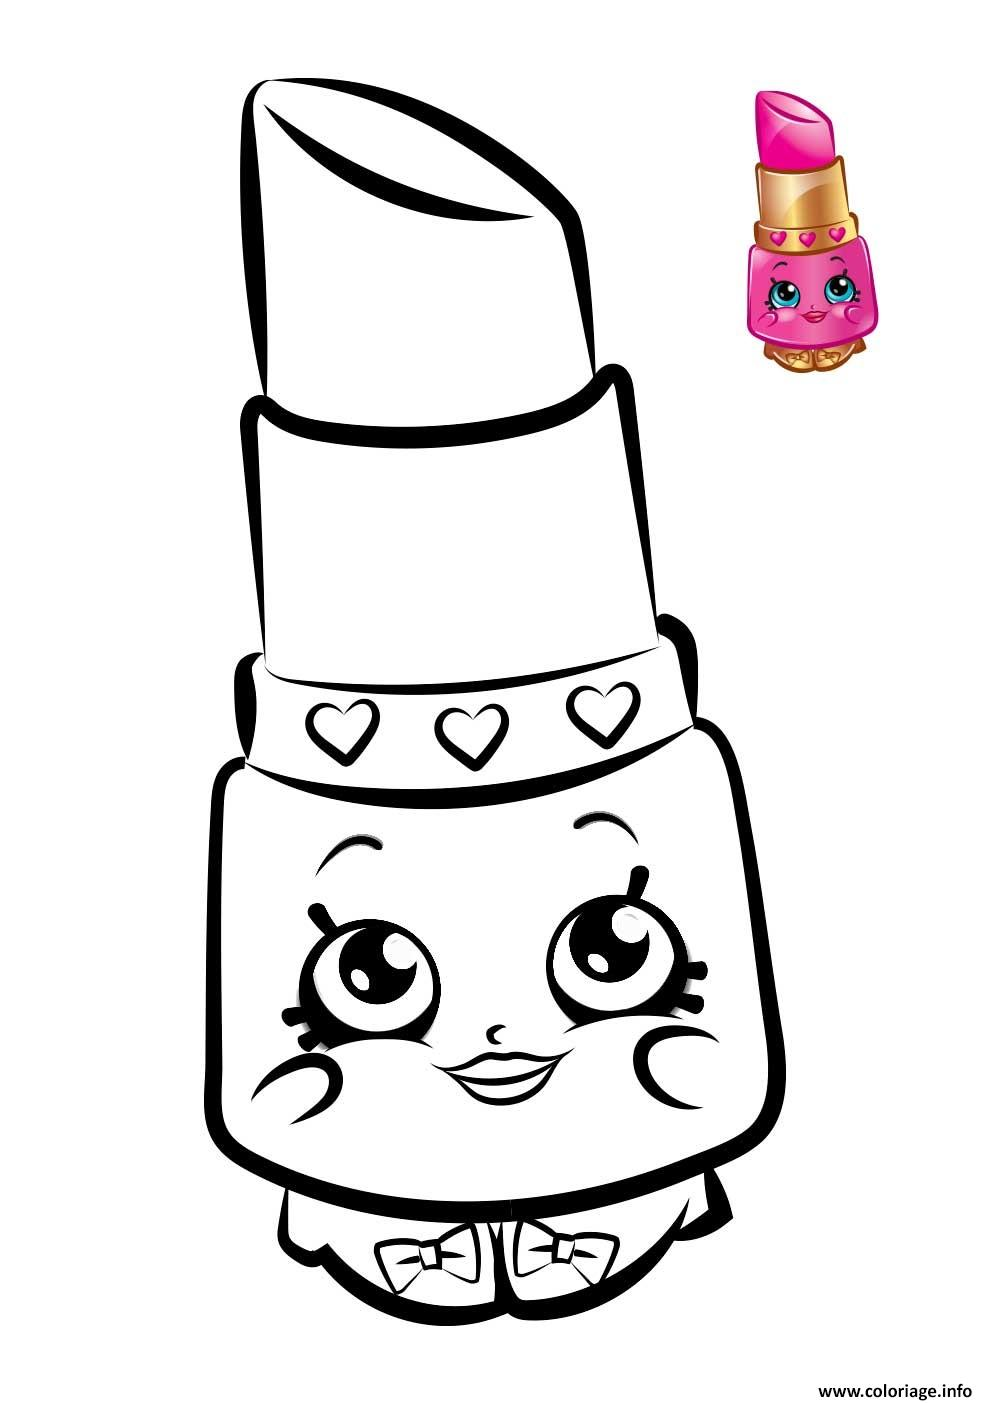 Coloriage shopkins lipstick for Lipstick shopkins coloring page